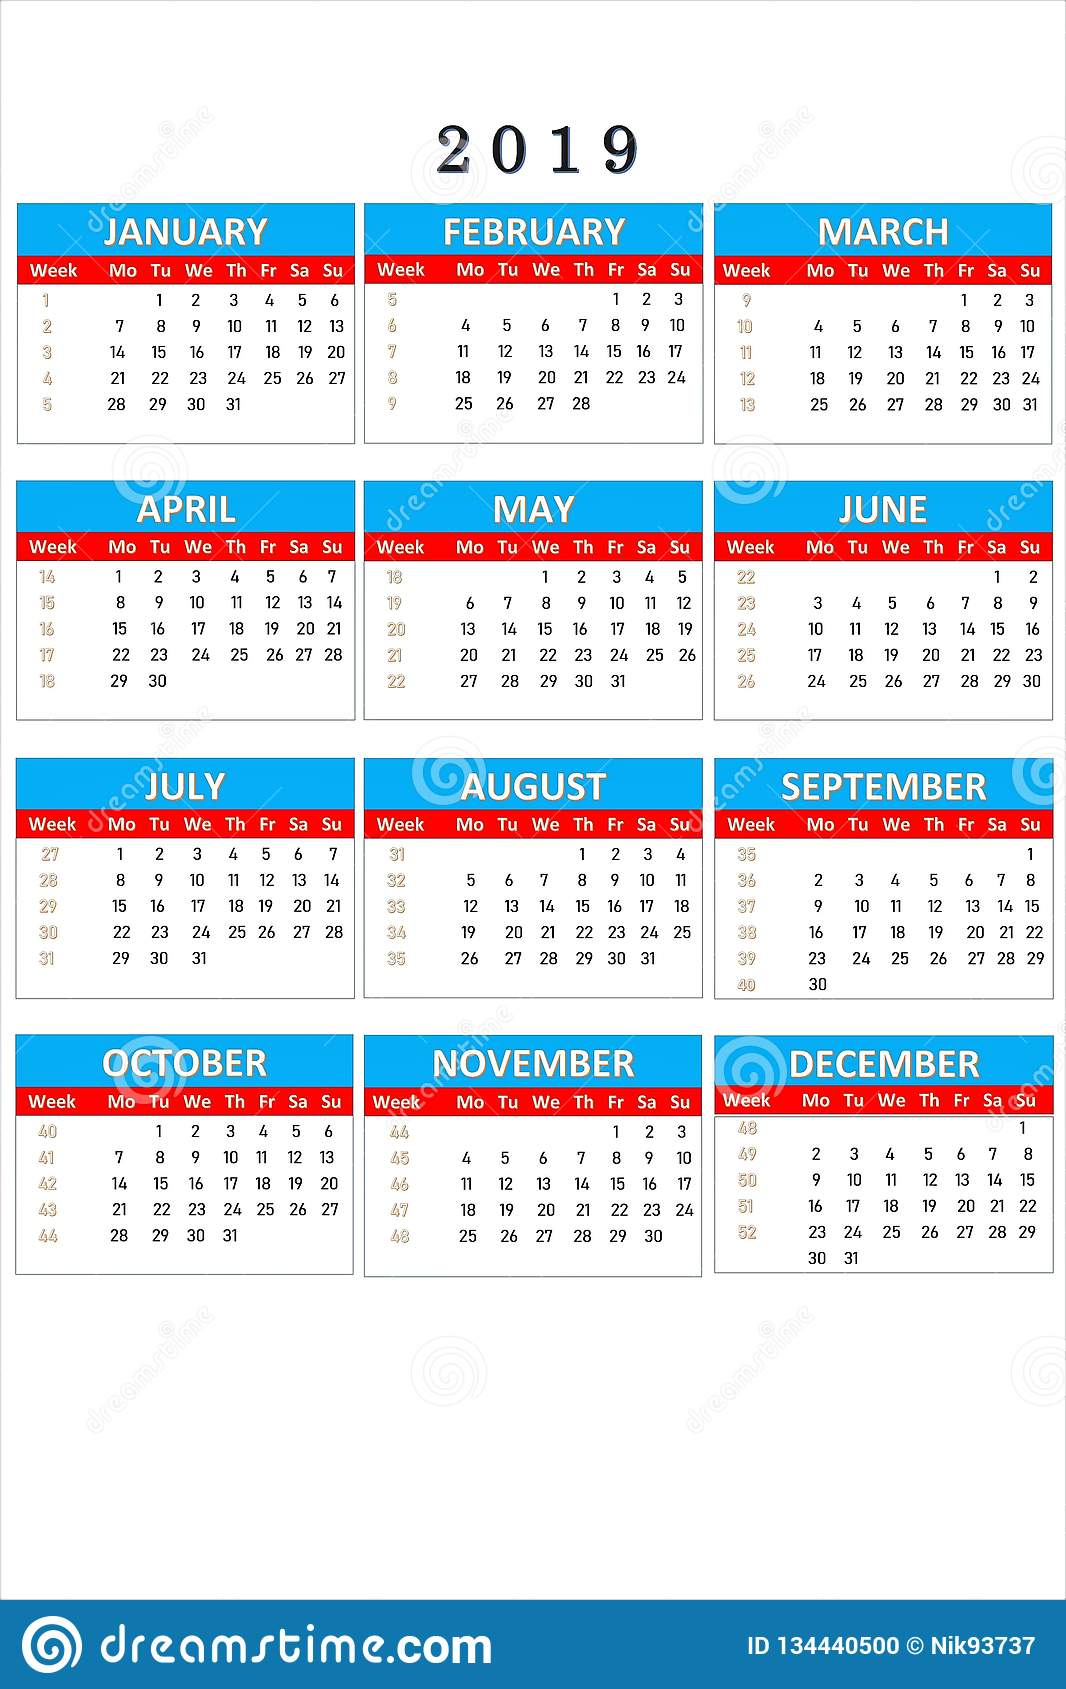 Calendars That Work 2019 Calendar For 2019 For Notes And Office Work. Calendar Is Your